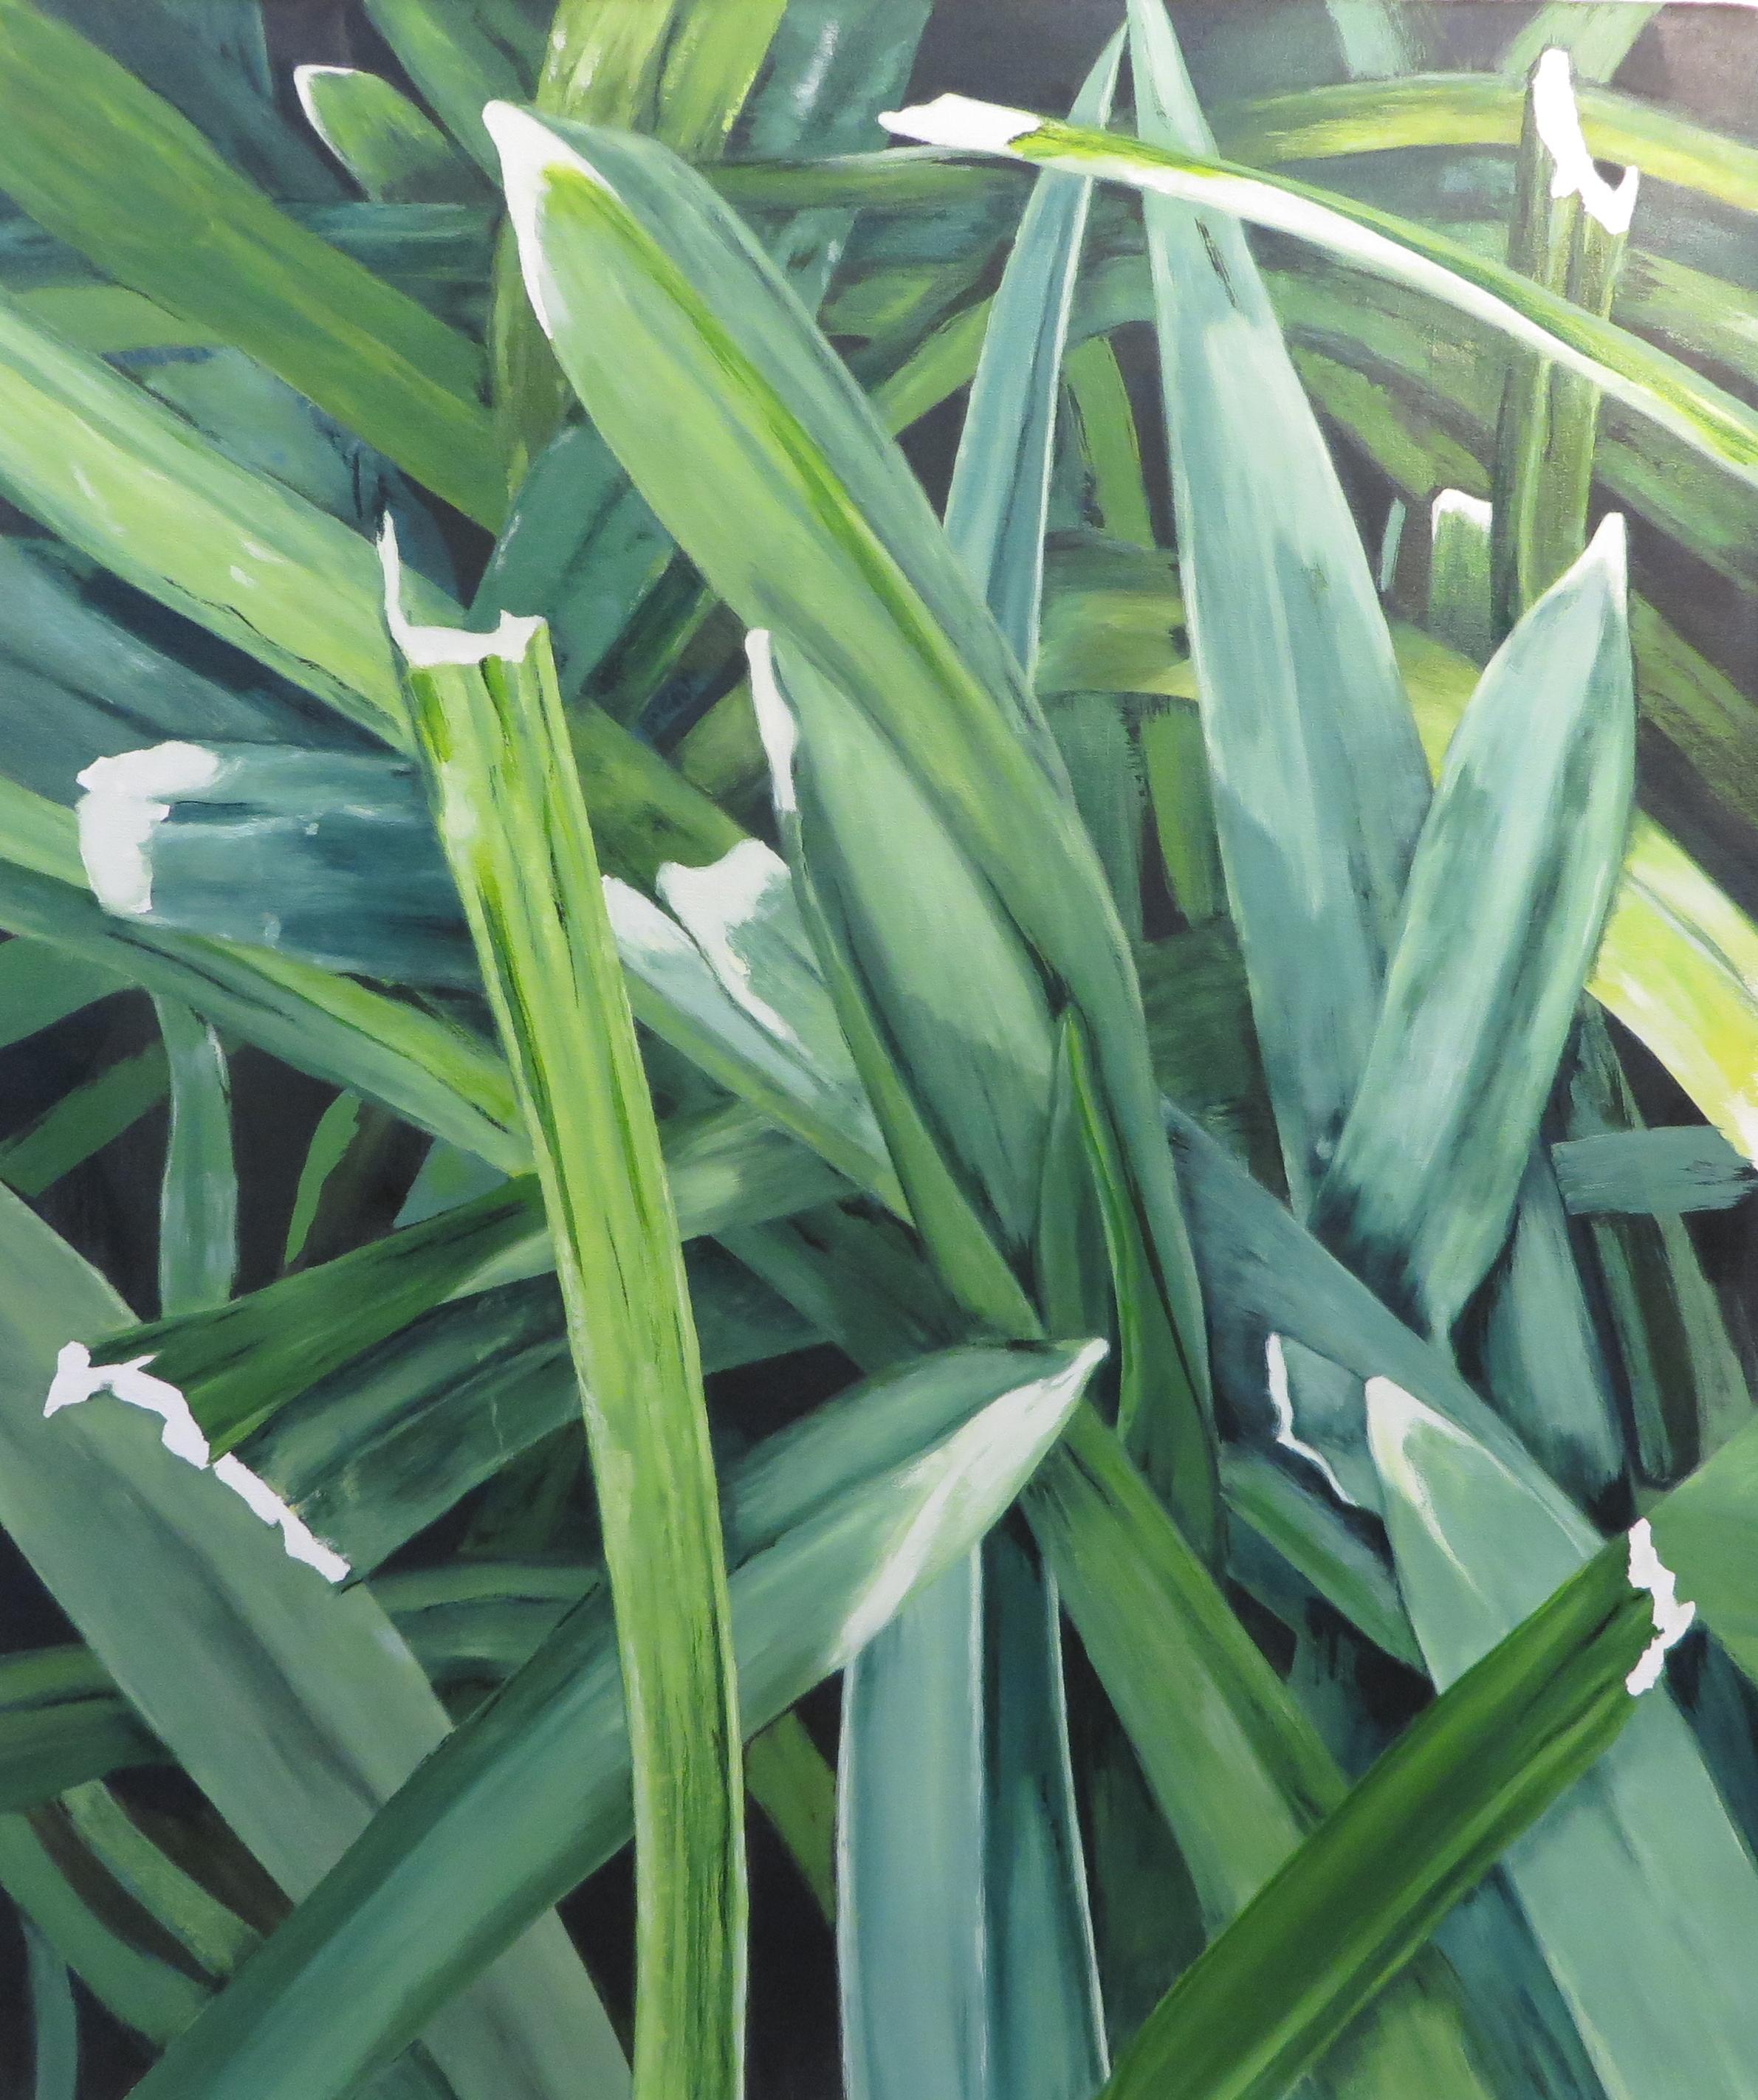 Grass, enlarged, 2014